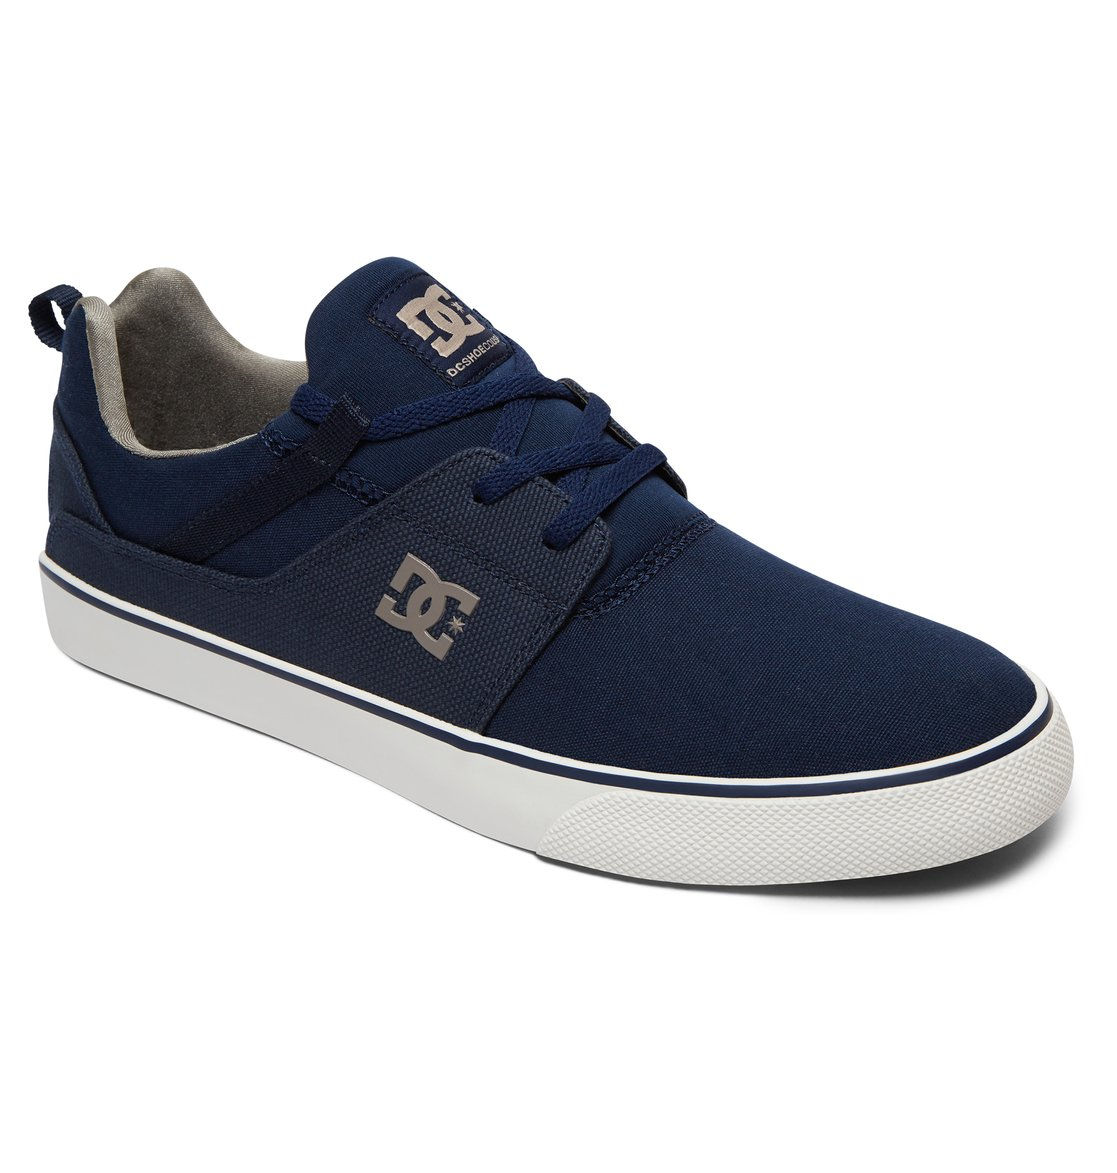 Chaussures DC Heathrow Navy Nvy VmfwH4r